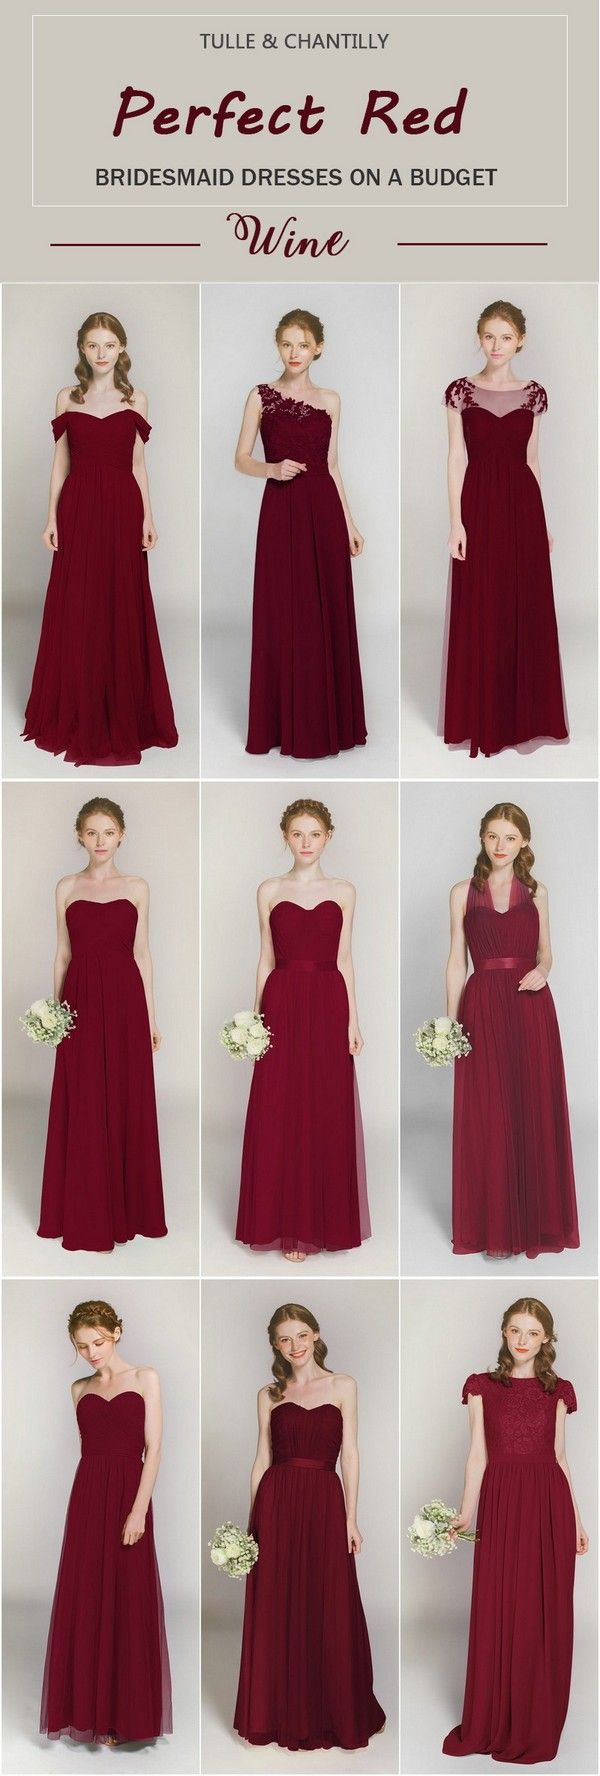 Burgundy Wine Maroon Red Bridesmaid Dresses Red Bridesmaid Dresses Wine Bridesmaid Dresses Red Bridesmaids